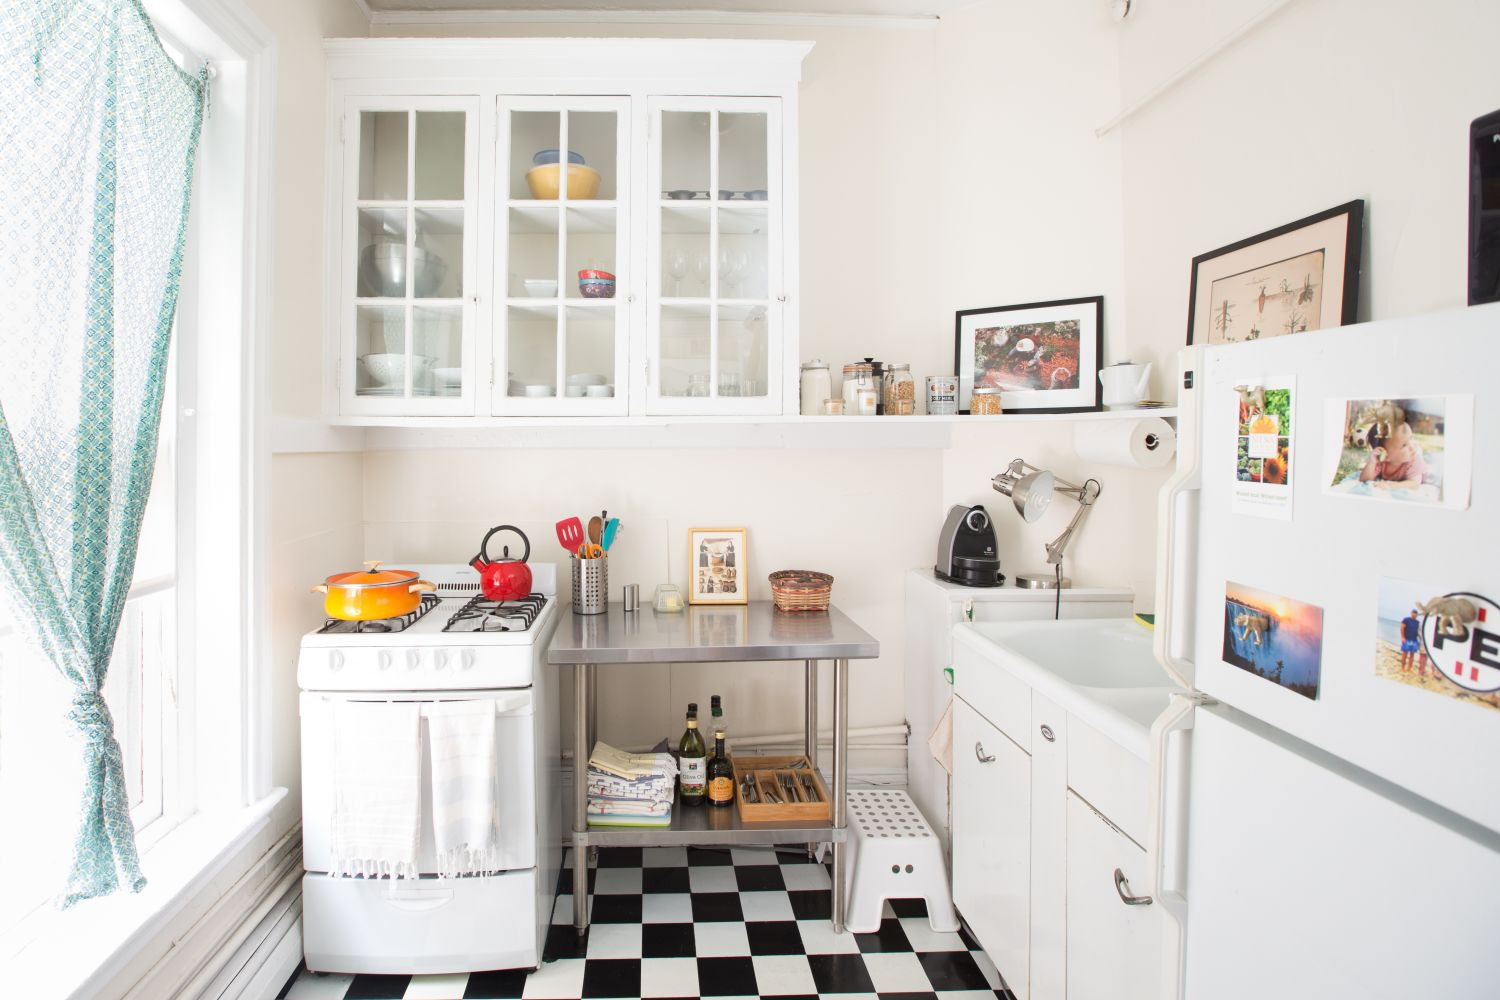 Simple Kitchen Design For Small Space: Small Kitchen Design Ideas Worth Saving